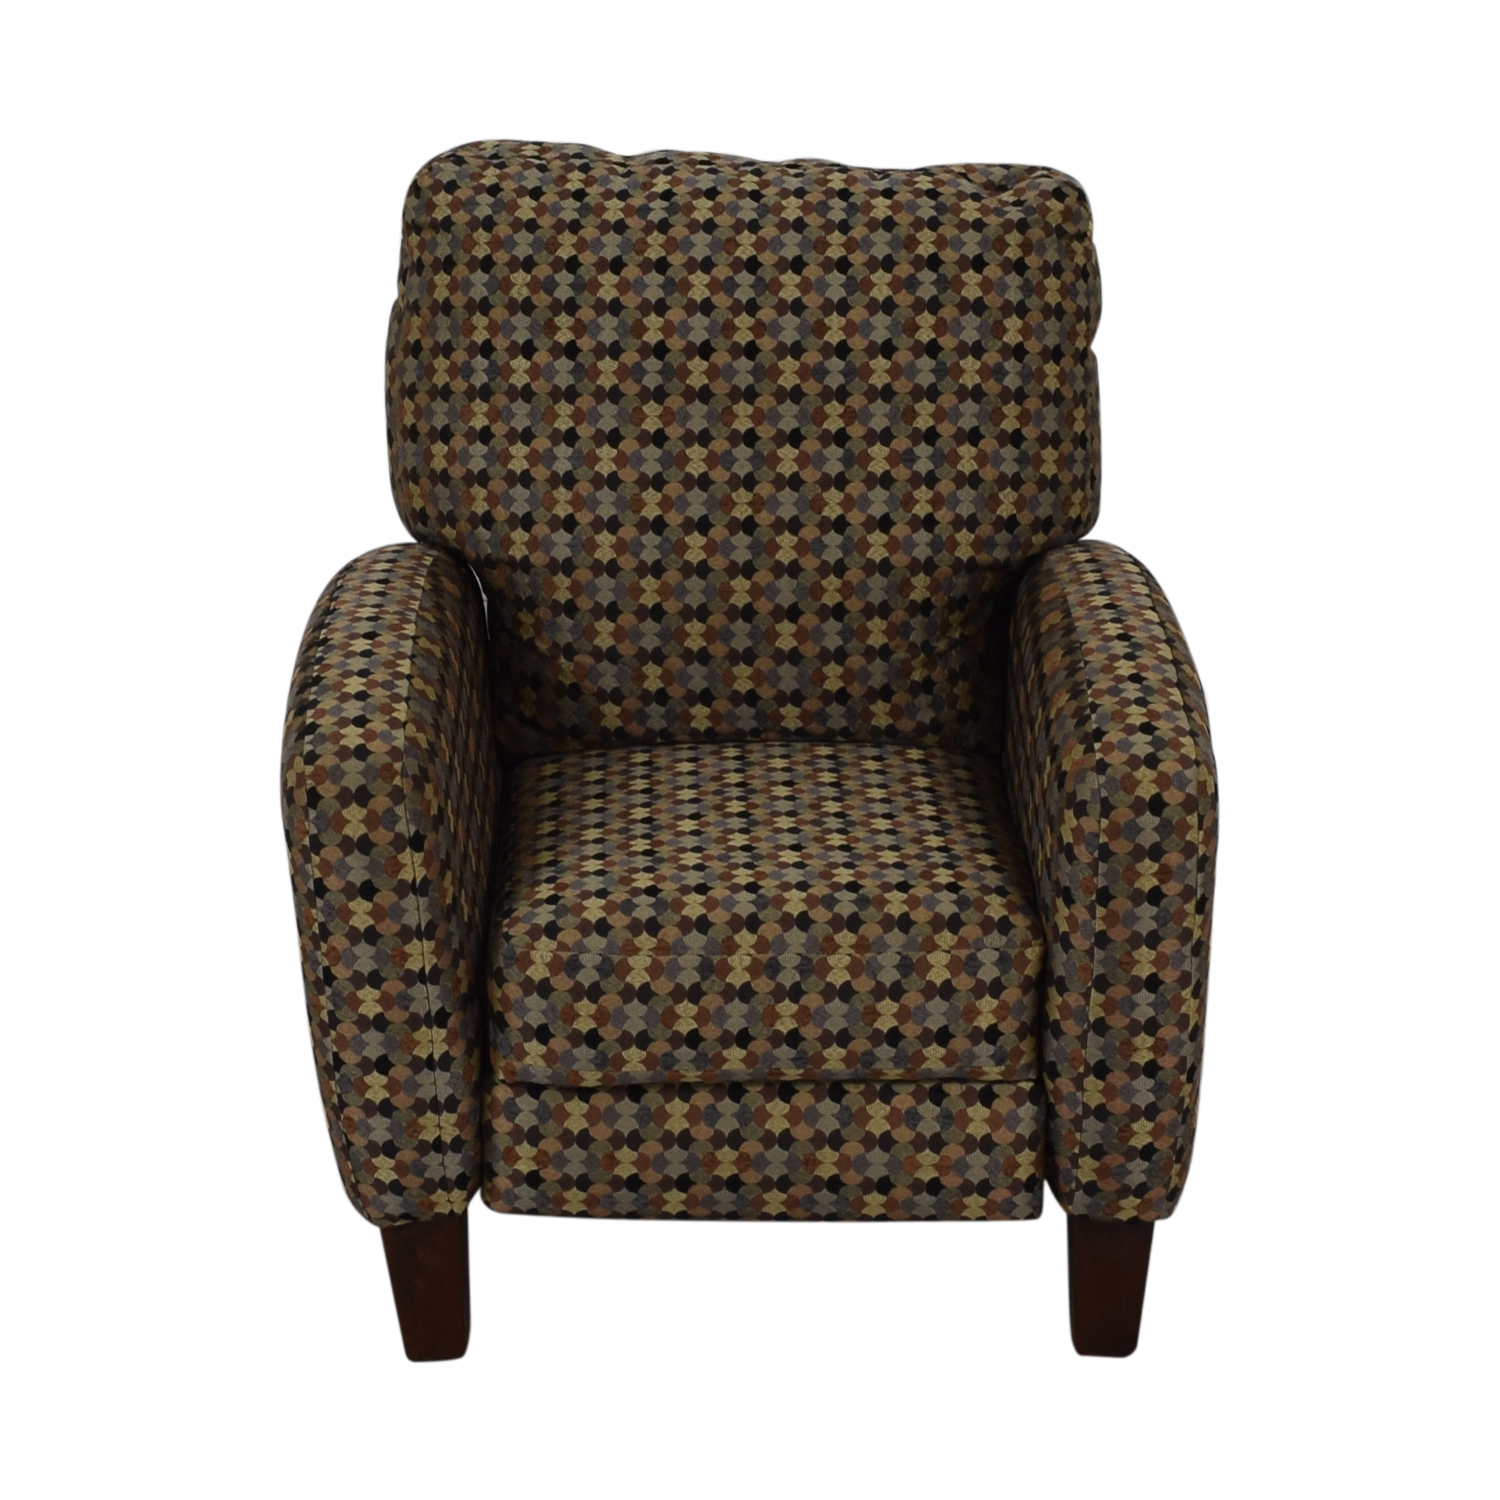 buy  Southern Motion Kelley Tango Teal Multi-Colored Accent Recliner online